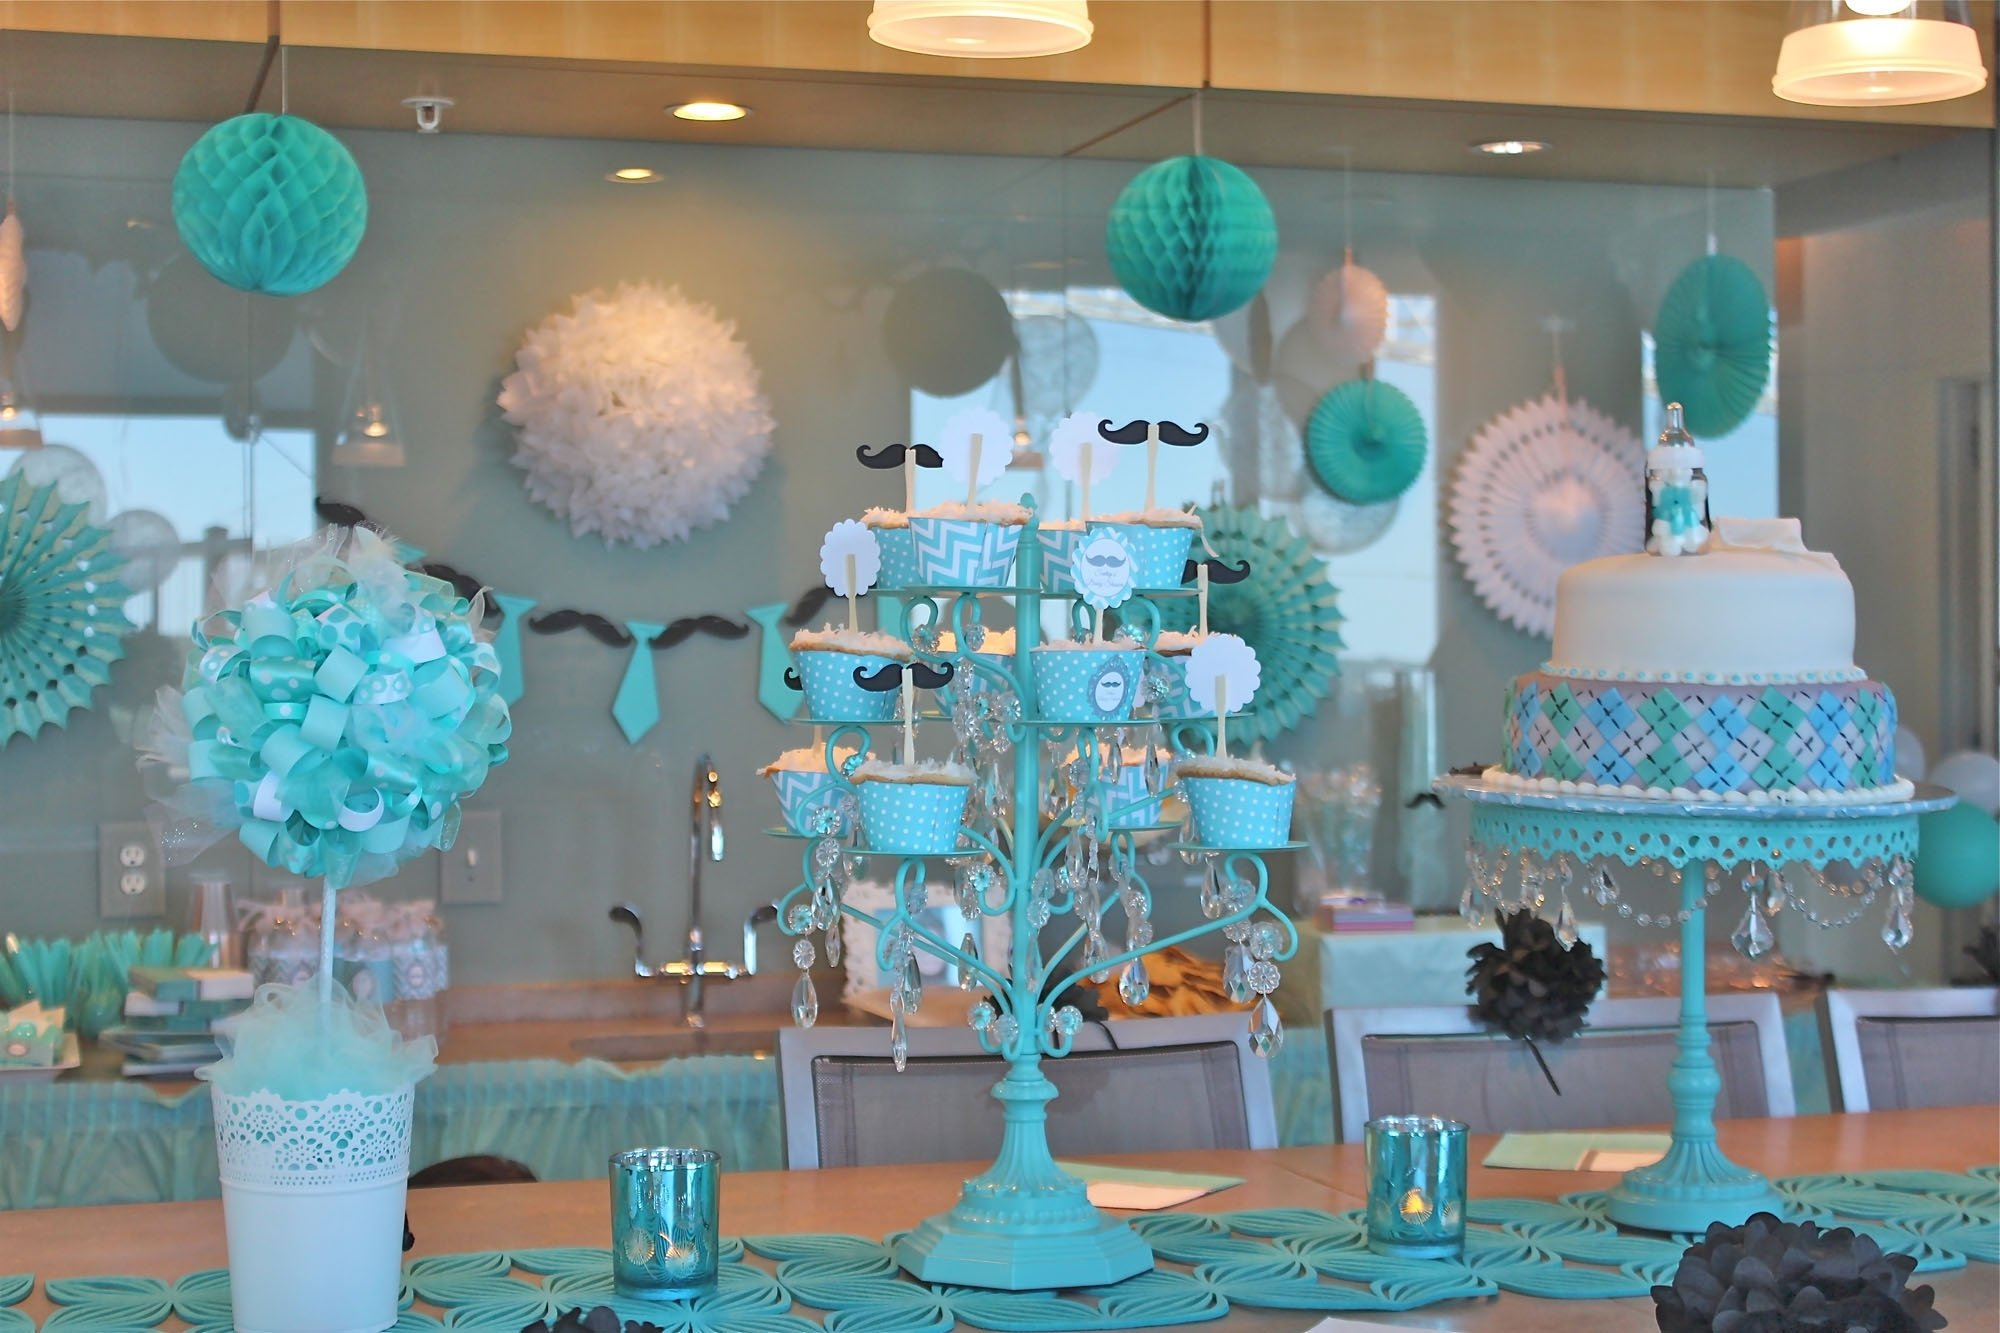 10 Attractive Baby Shower Centerpieces Ideas For Boys baby shower centerpiece ideas baby shower decoration ideas 2 2020